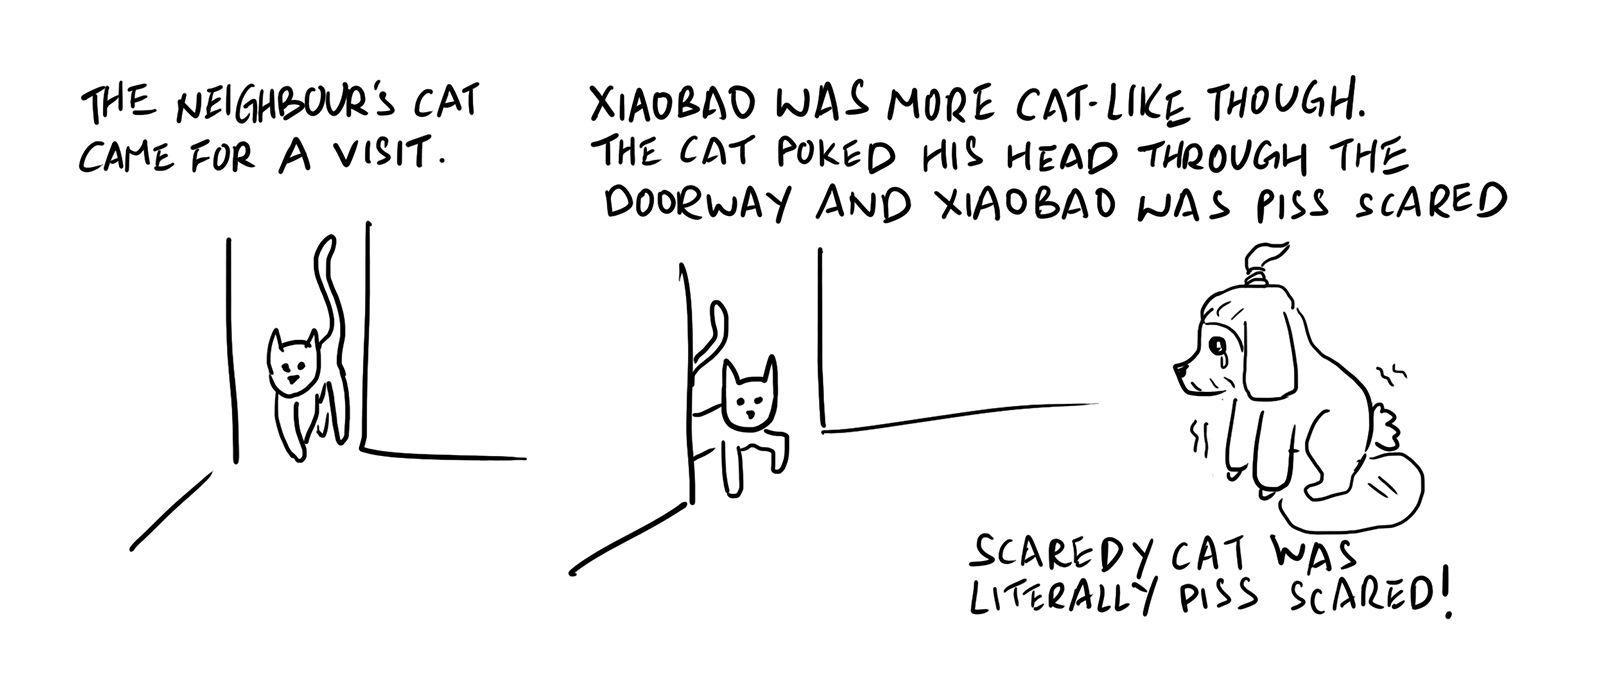 The scaredy cat and the cat